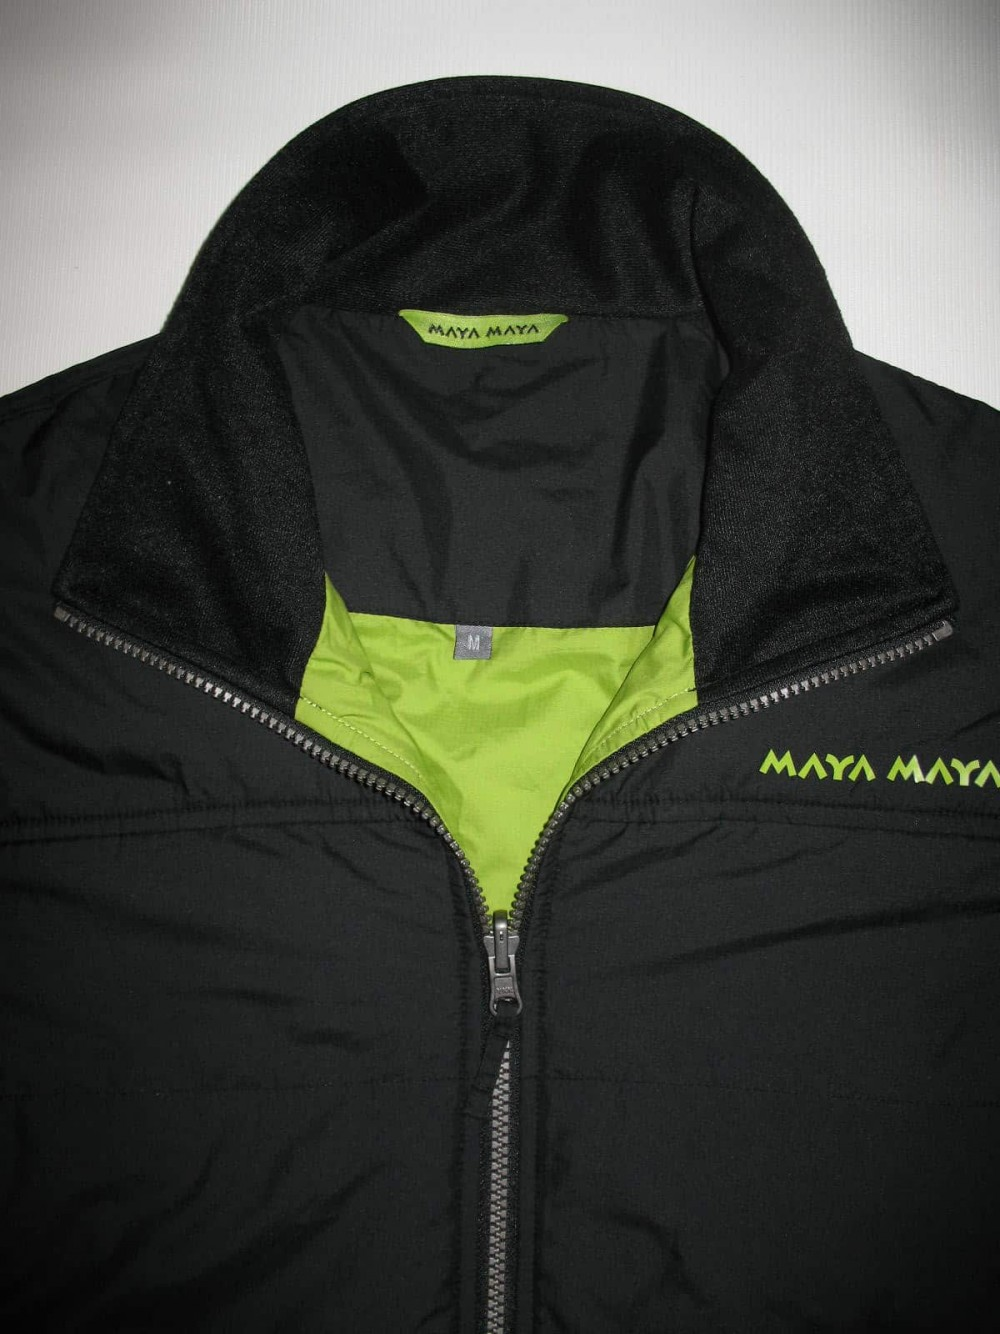 Куртка MAYA MAYA ultralight primaloft jacket (размер M) - 6